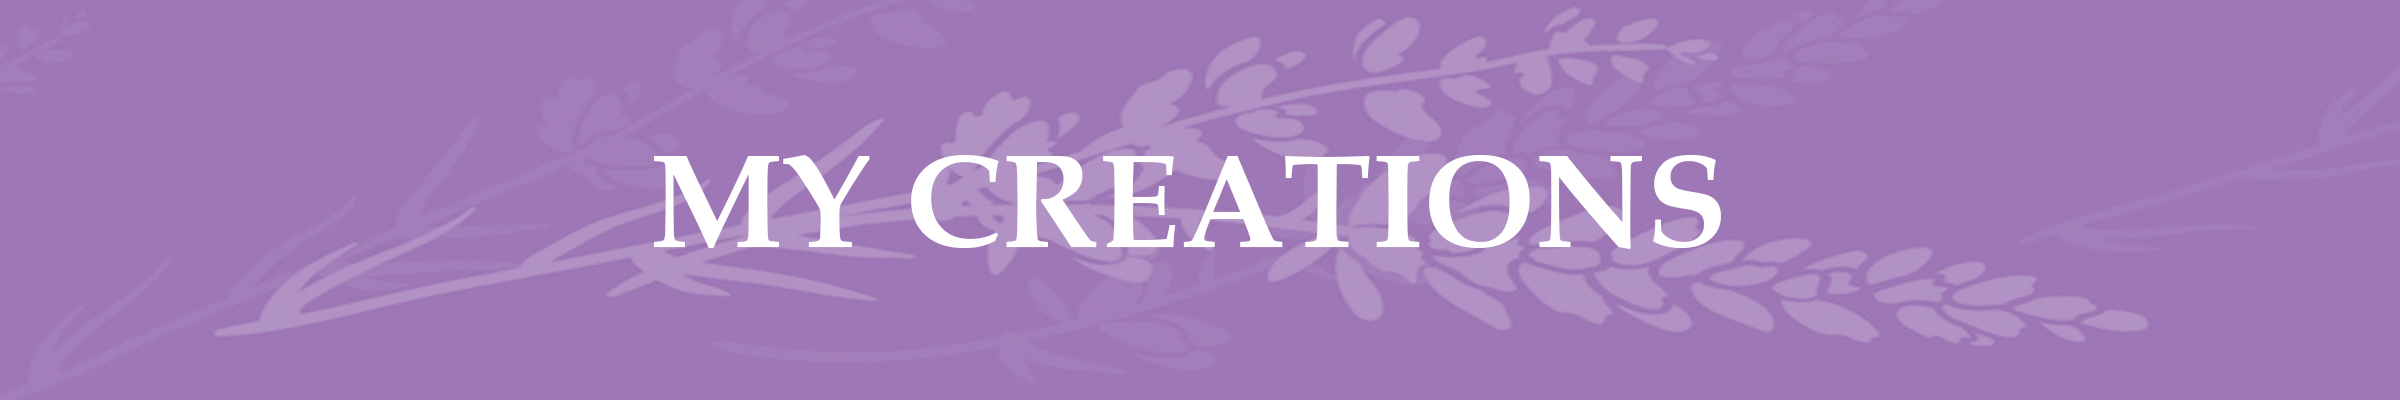 Lavender Page Header My Creations